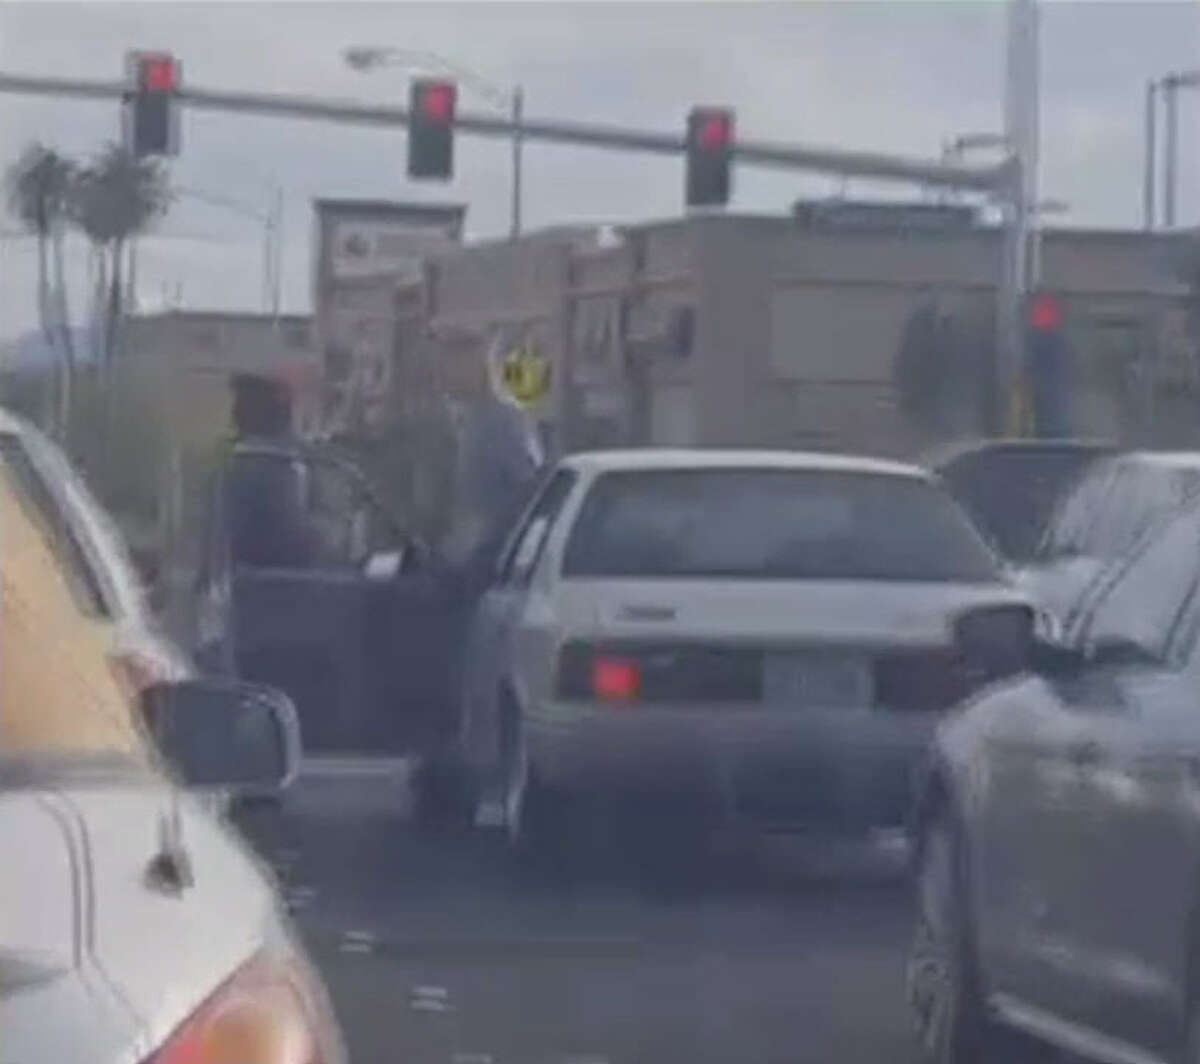 Two drivers in Las Vegas, Nevada get into an vicious road rage fight Monday, Oct. 10, 2016. The incident was captured on cellphone video.